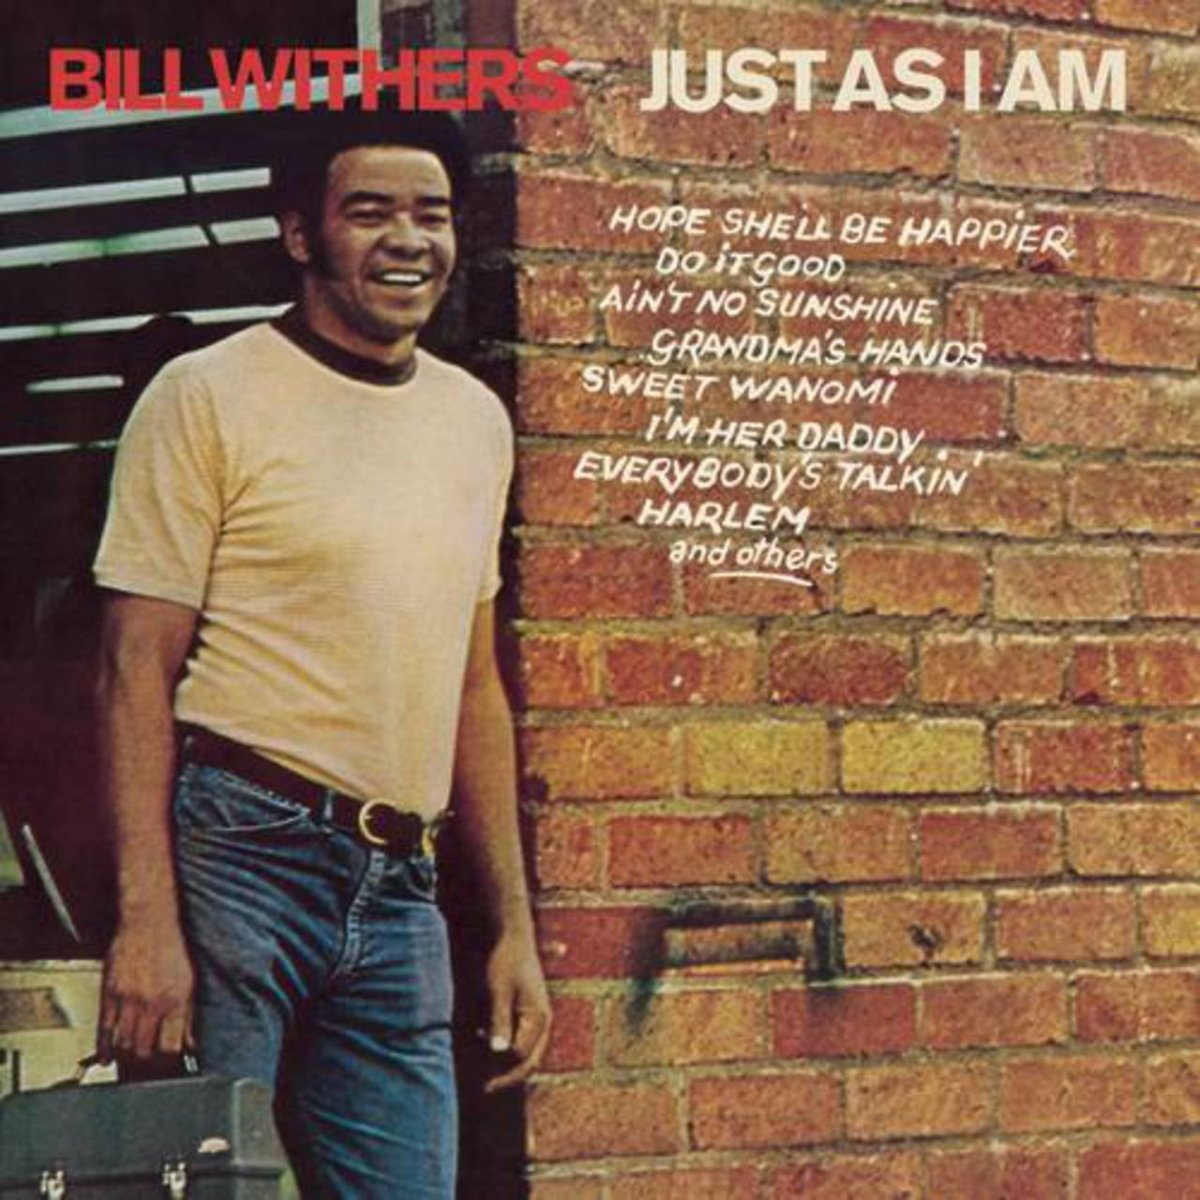 Bill Withers - Just As I Am (Cover)